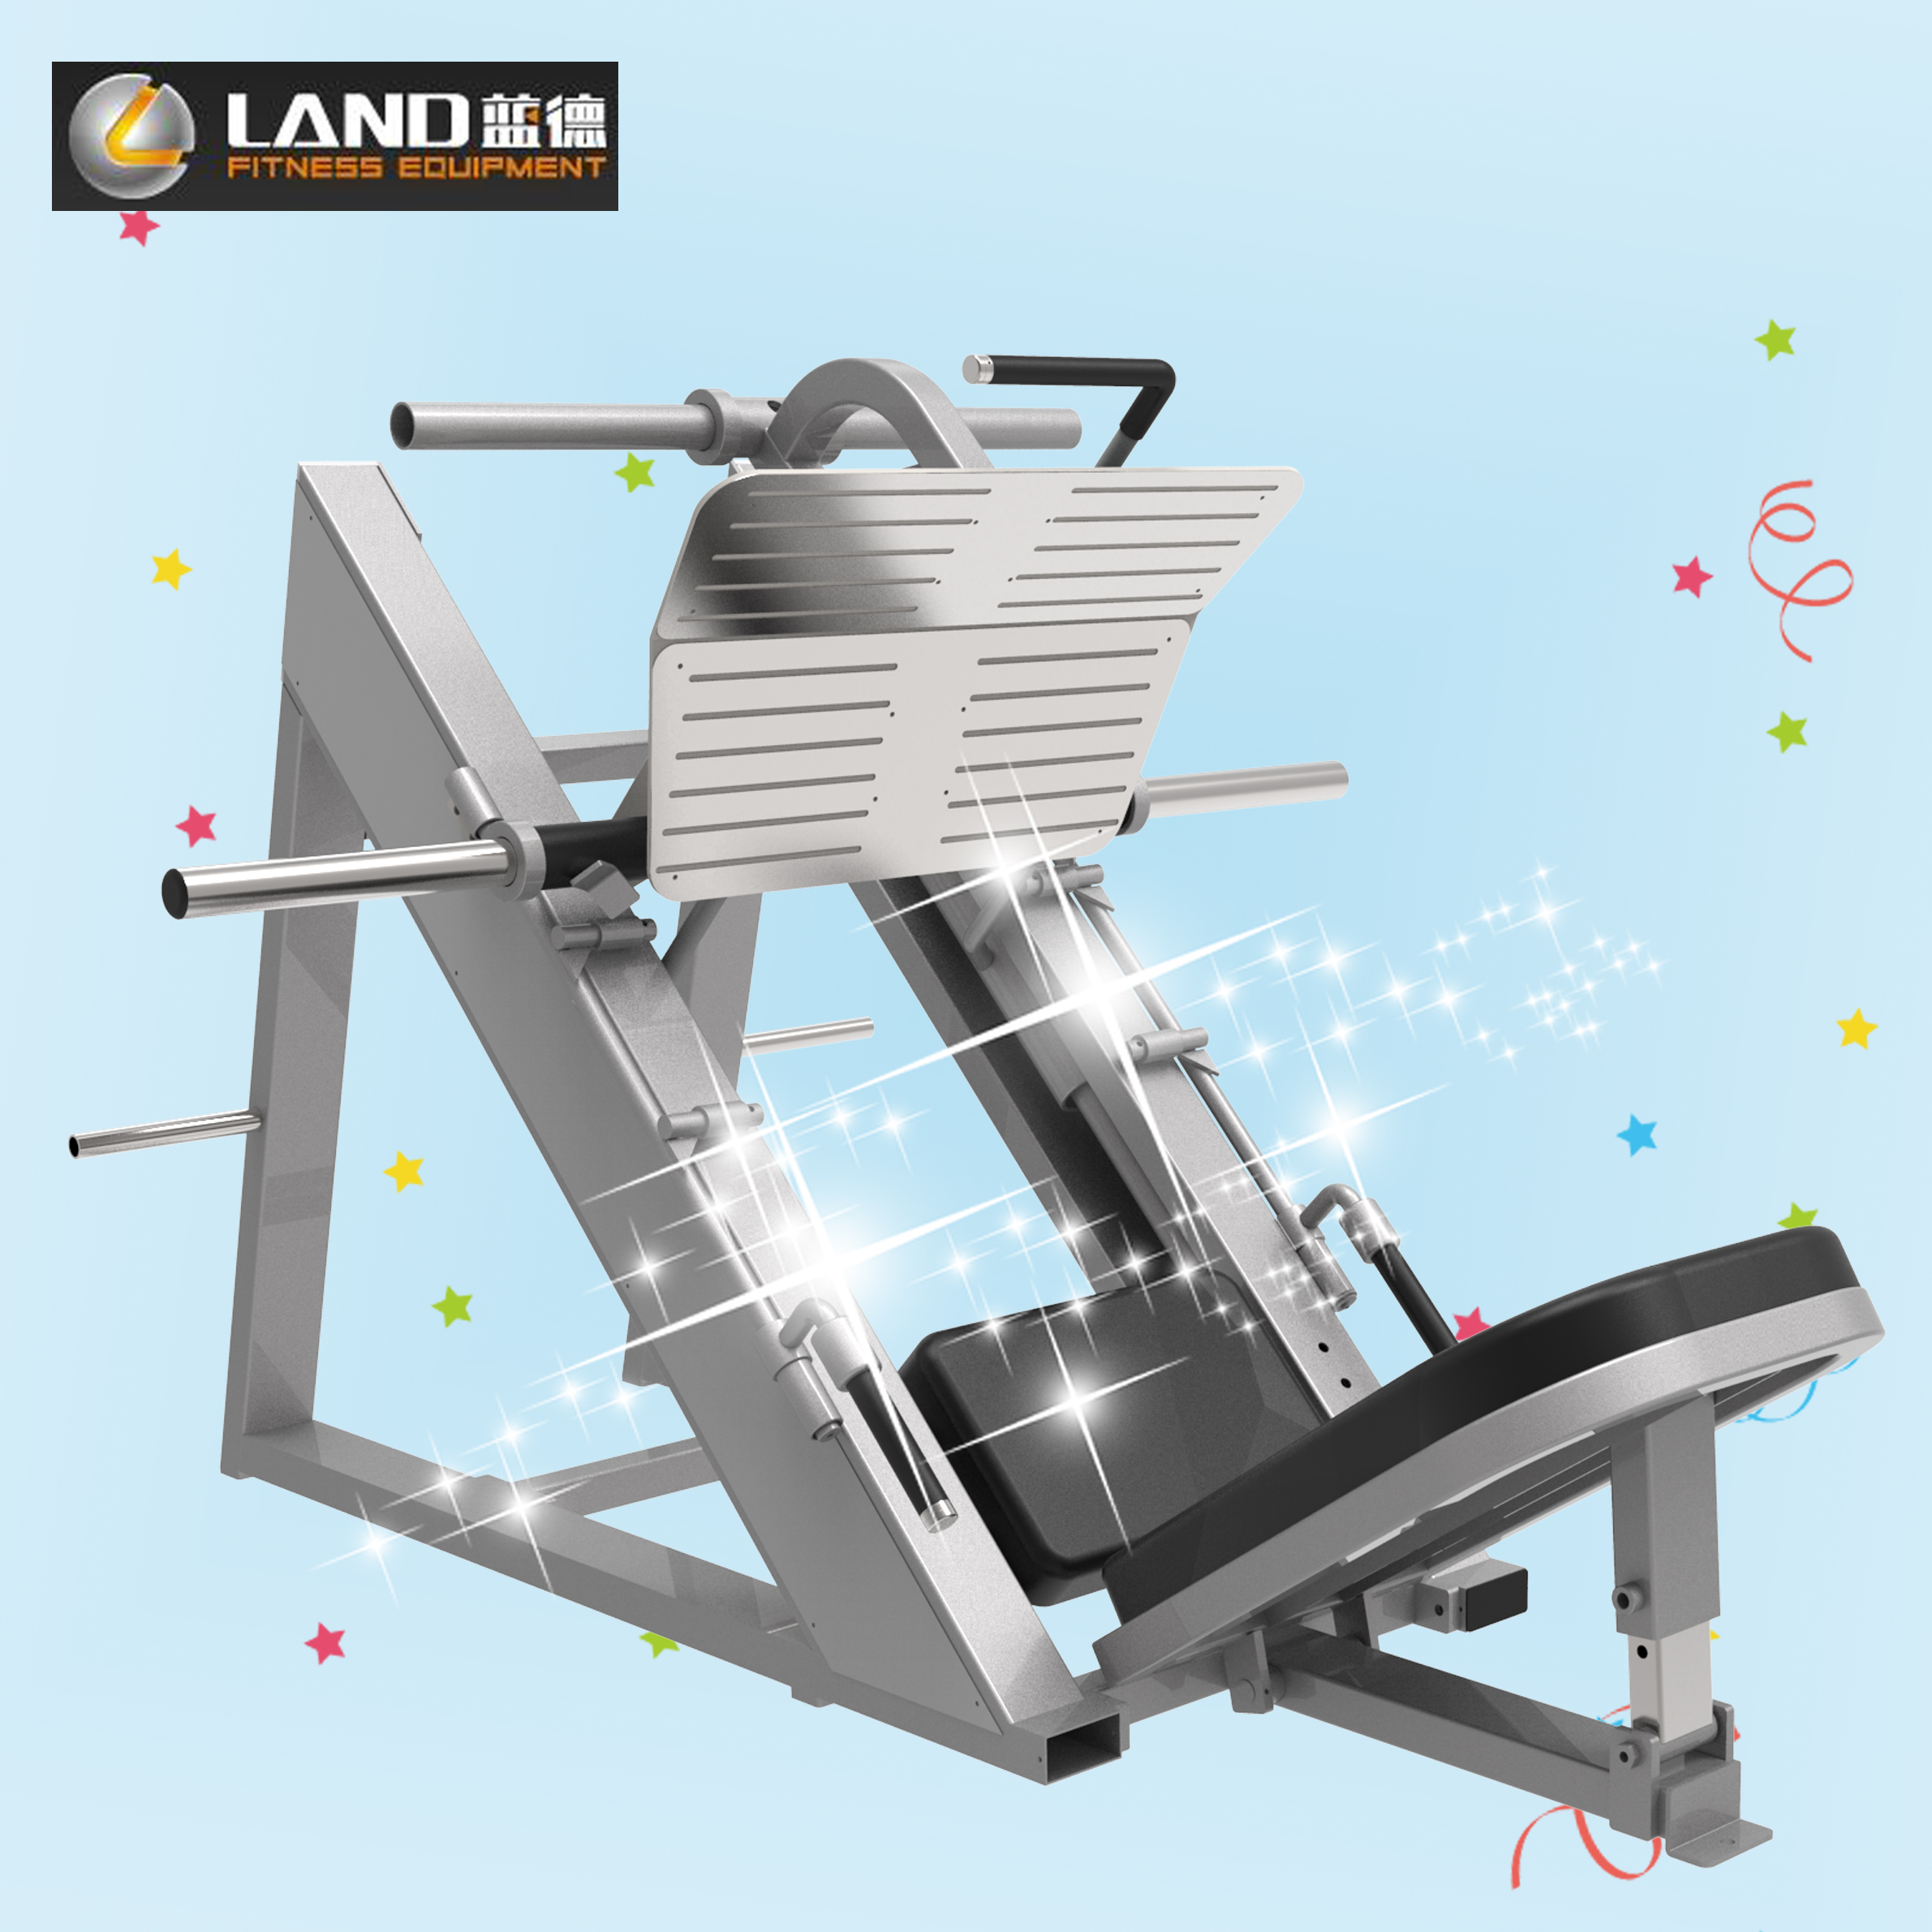 Leg Press For Sale >> Leg Press For Sale Gym Fitness Equipment Lifetime Fitness Machines Ld 9056 45 Degree Leg Press Buy Leg Press For Sale Gym Fitness Equipment Lifetime